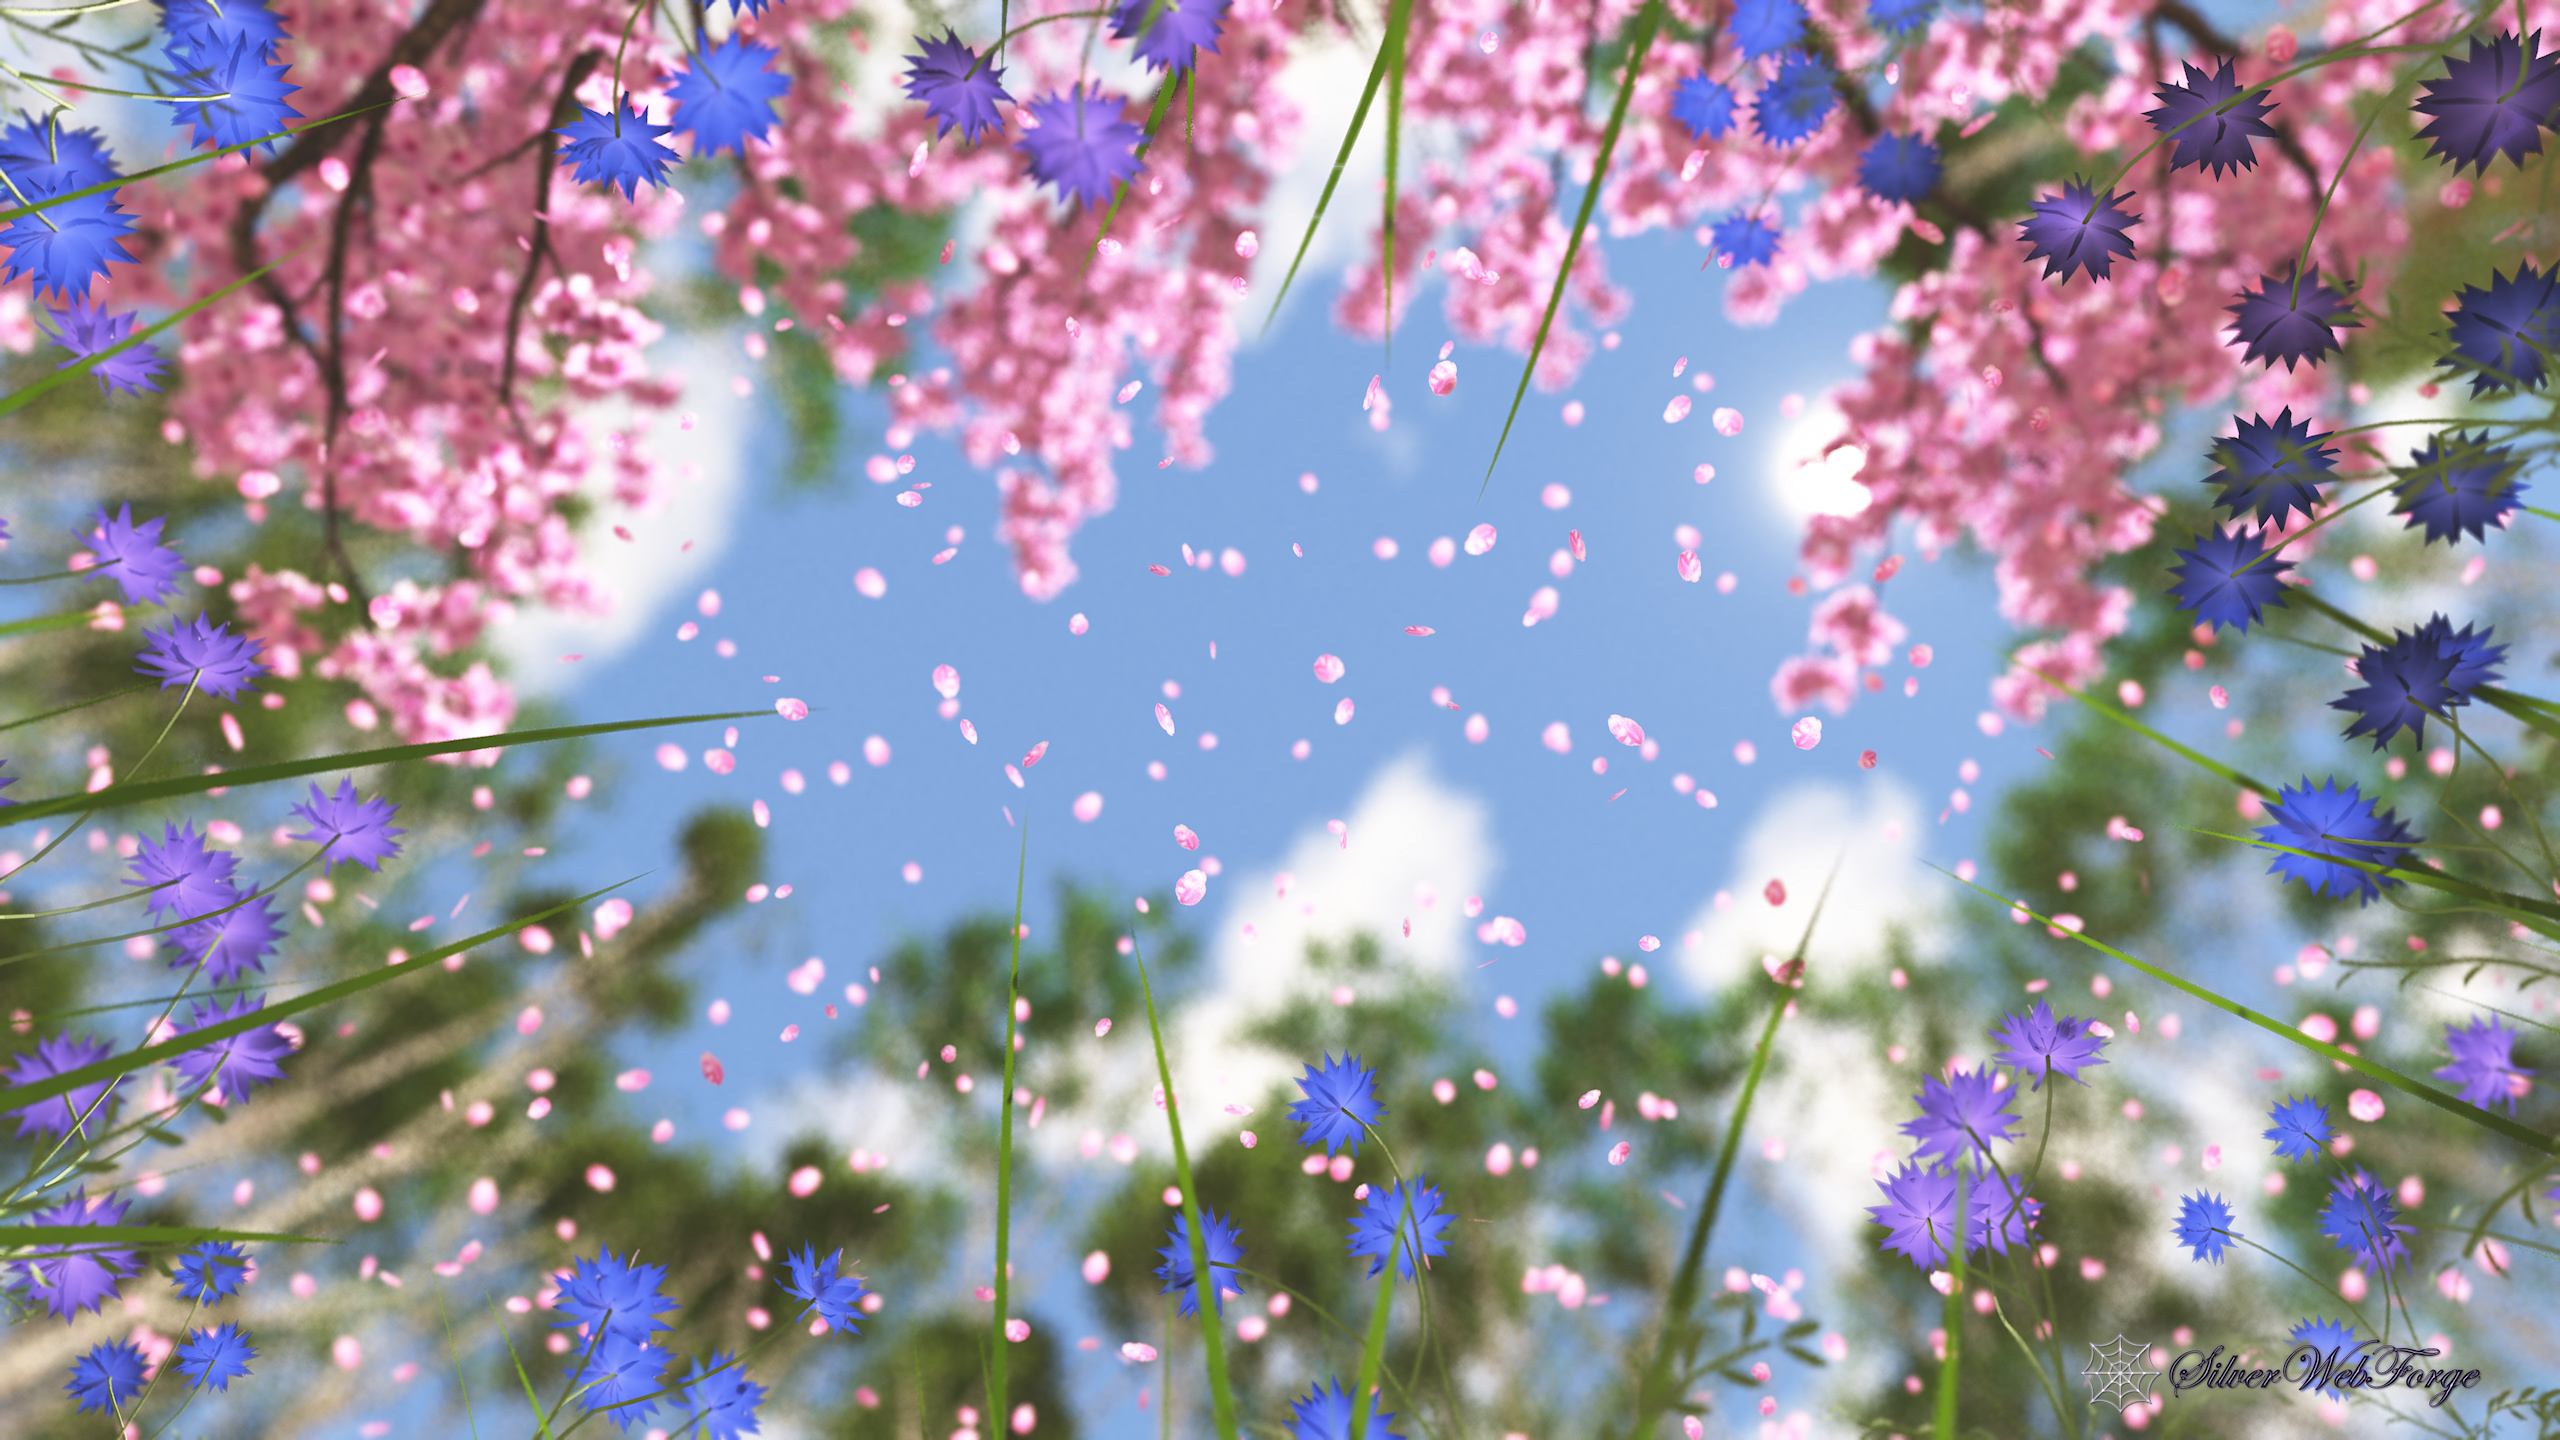 Falling Cherry Blossoms Wallpaper April Showers Silverwebforge